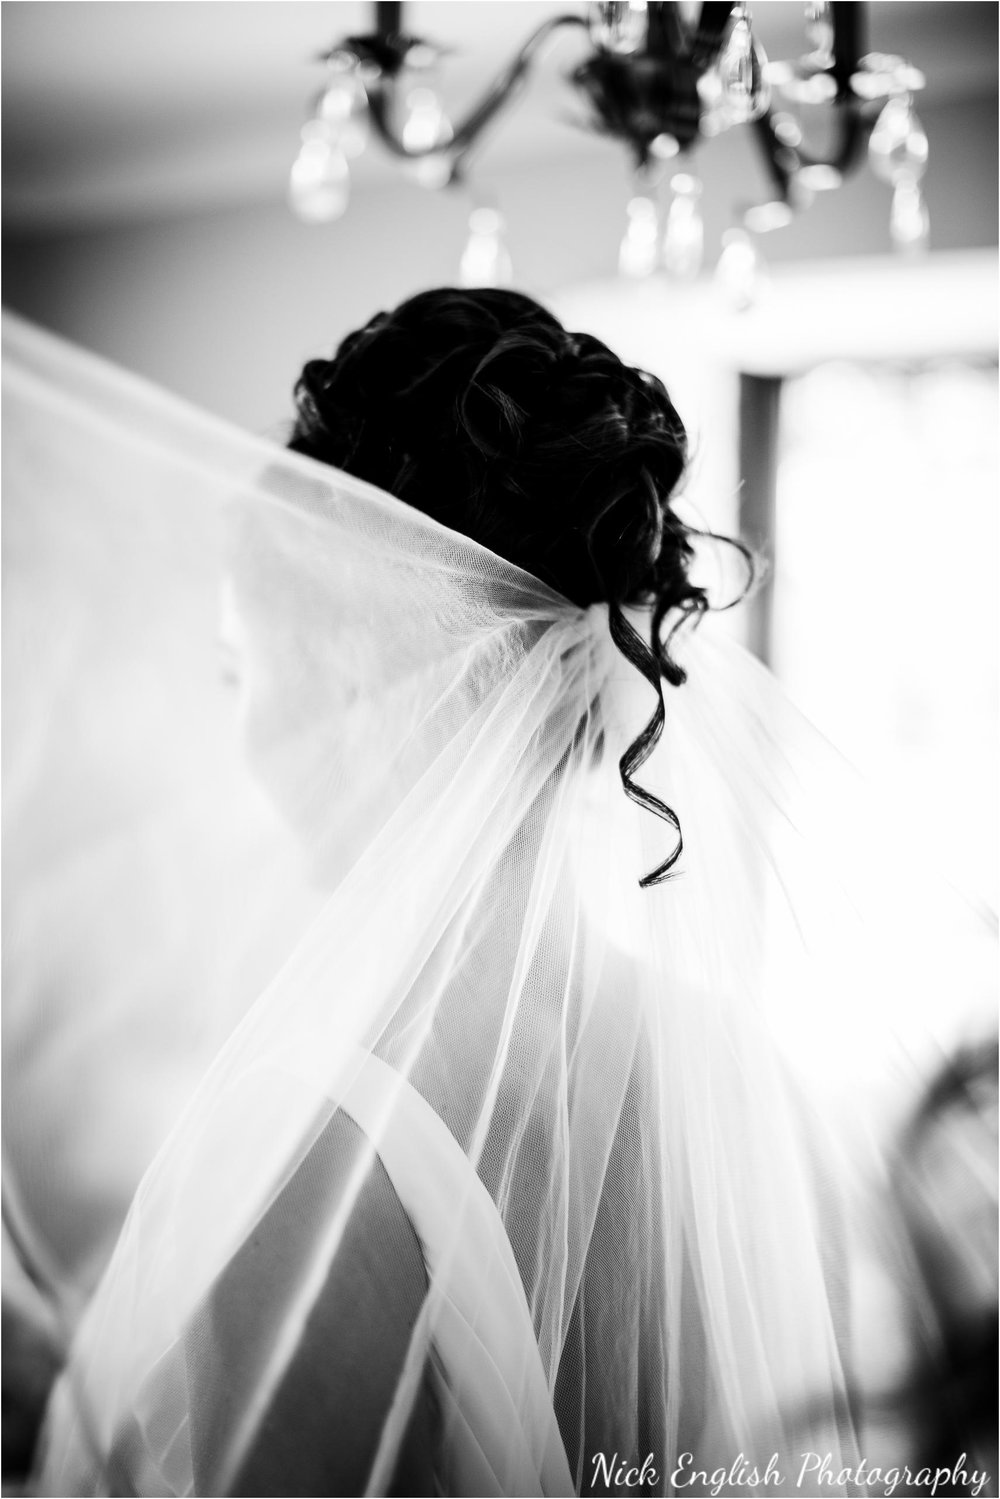 Emily David Wedding Photographs at Barton Grange Preston by Nick English Photography 32jpg.jpeg